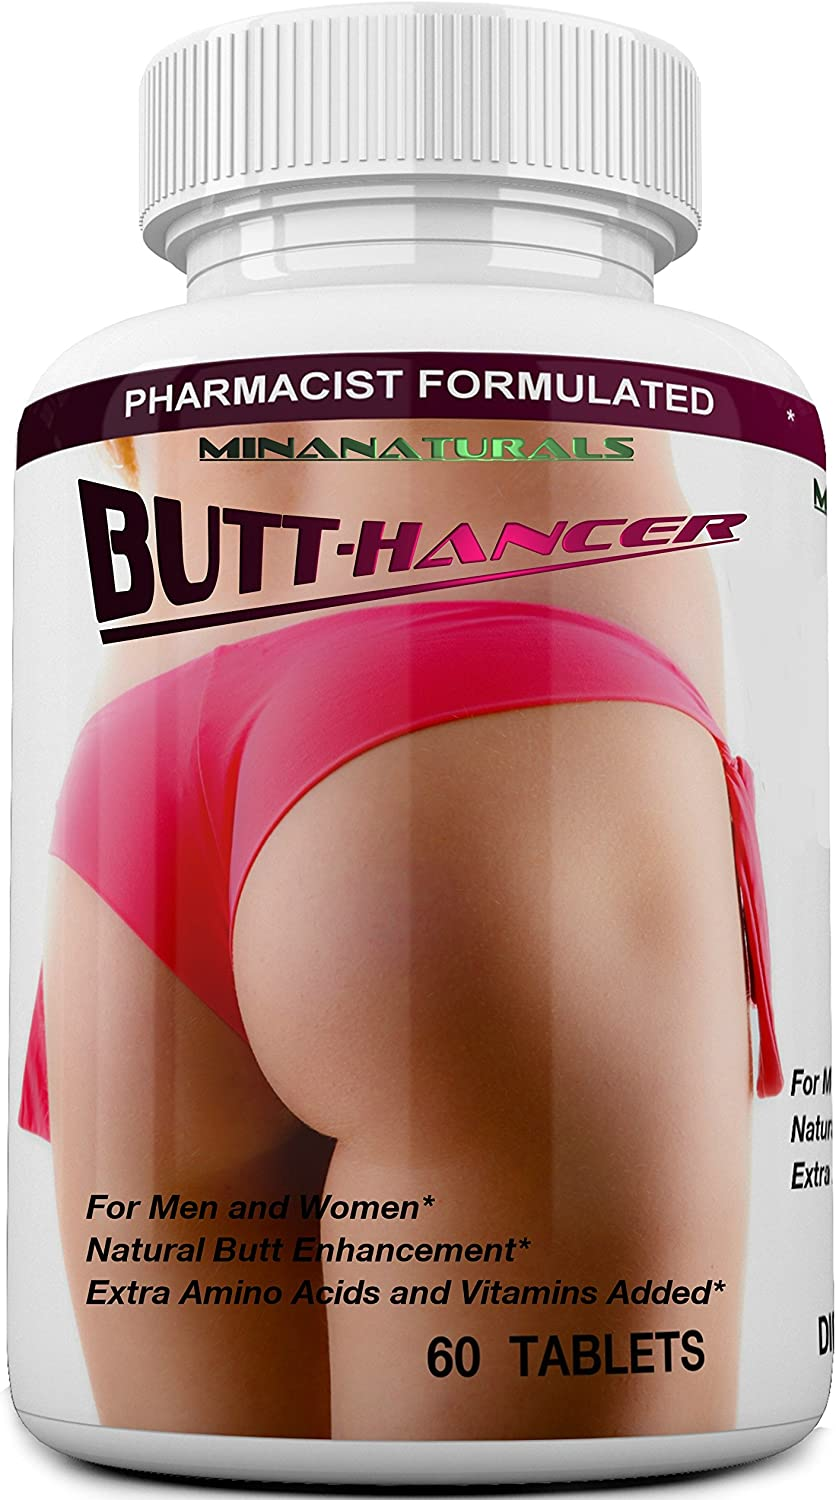 BUTTHANCER Natural Butt Enlargement & Butt Enhancement Pills. Glutes Growth and Bigger Booty Enhancer Pills. 60 Tablets